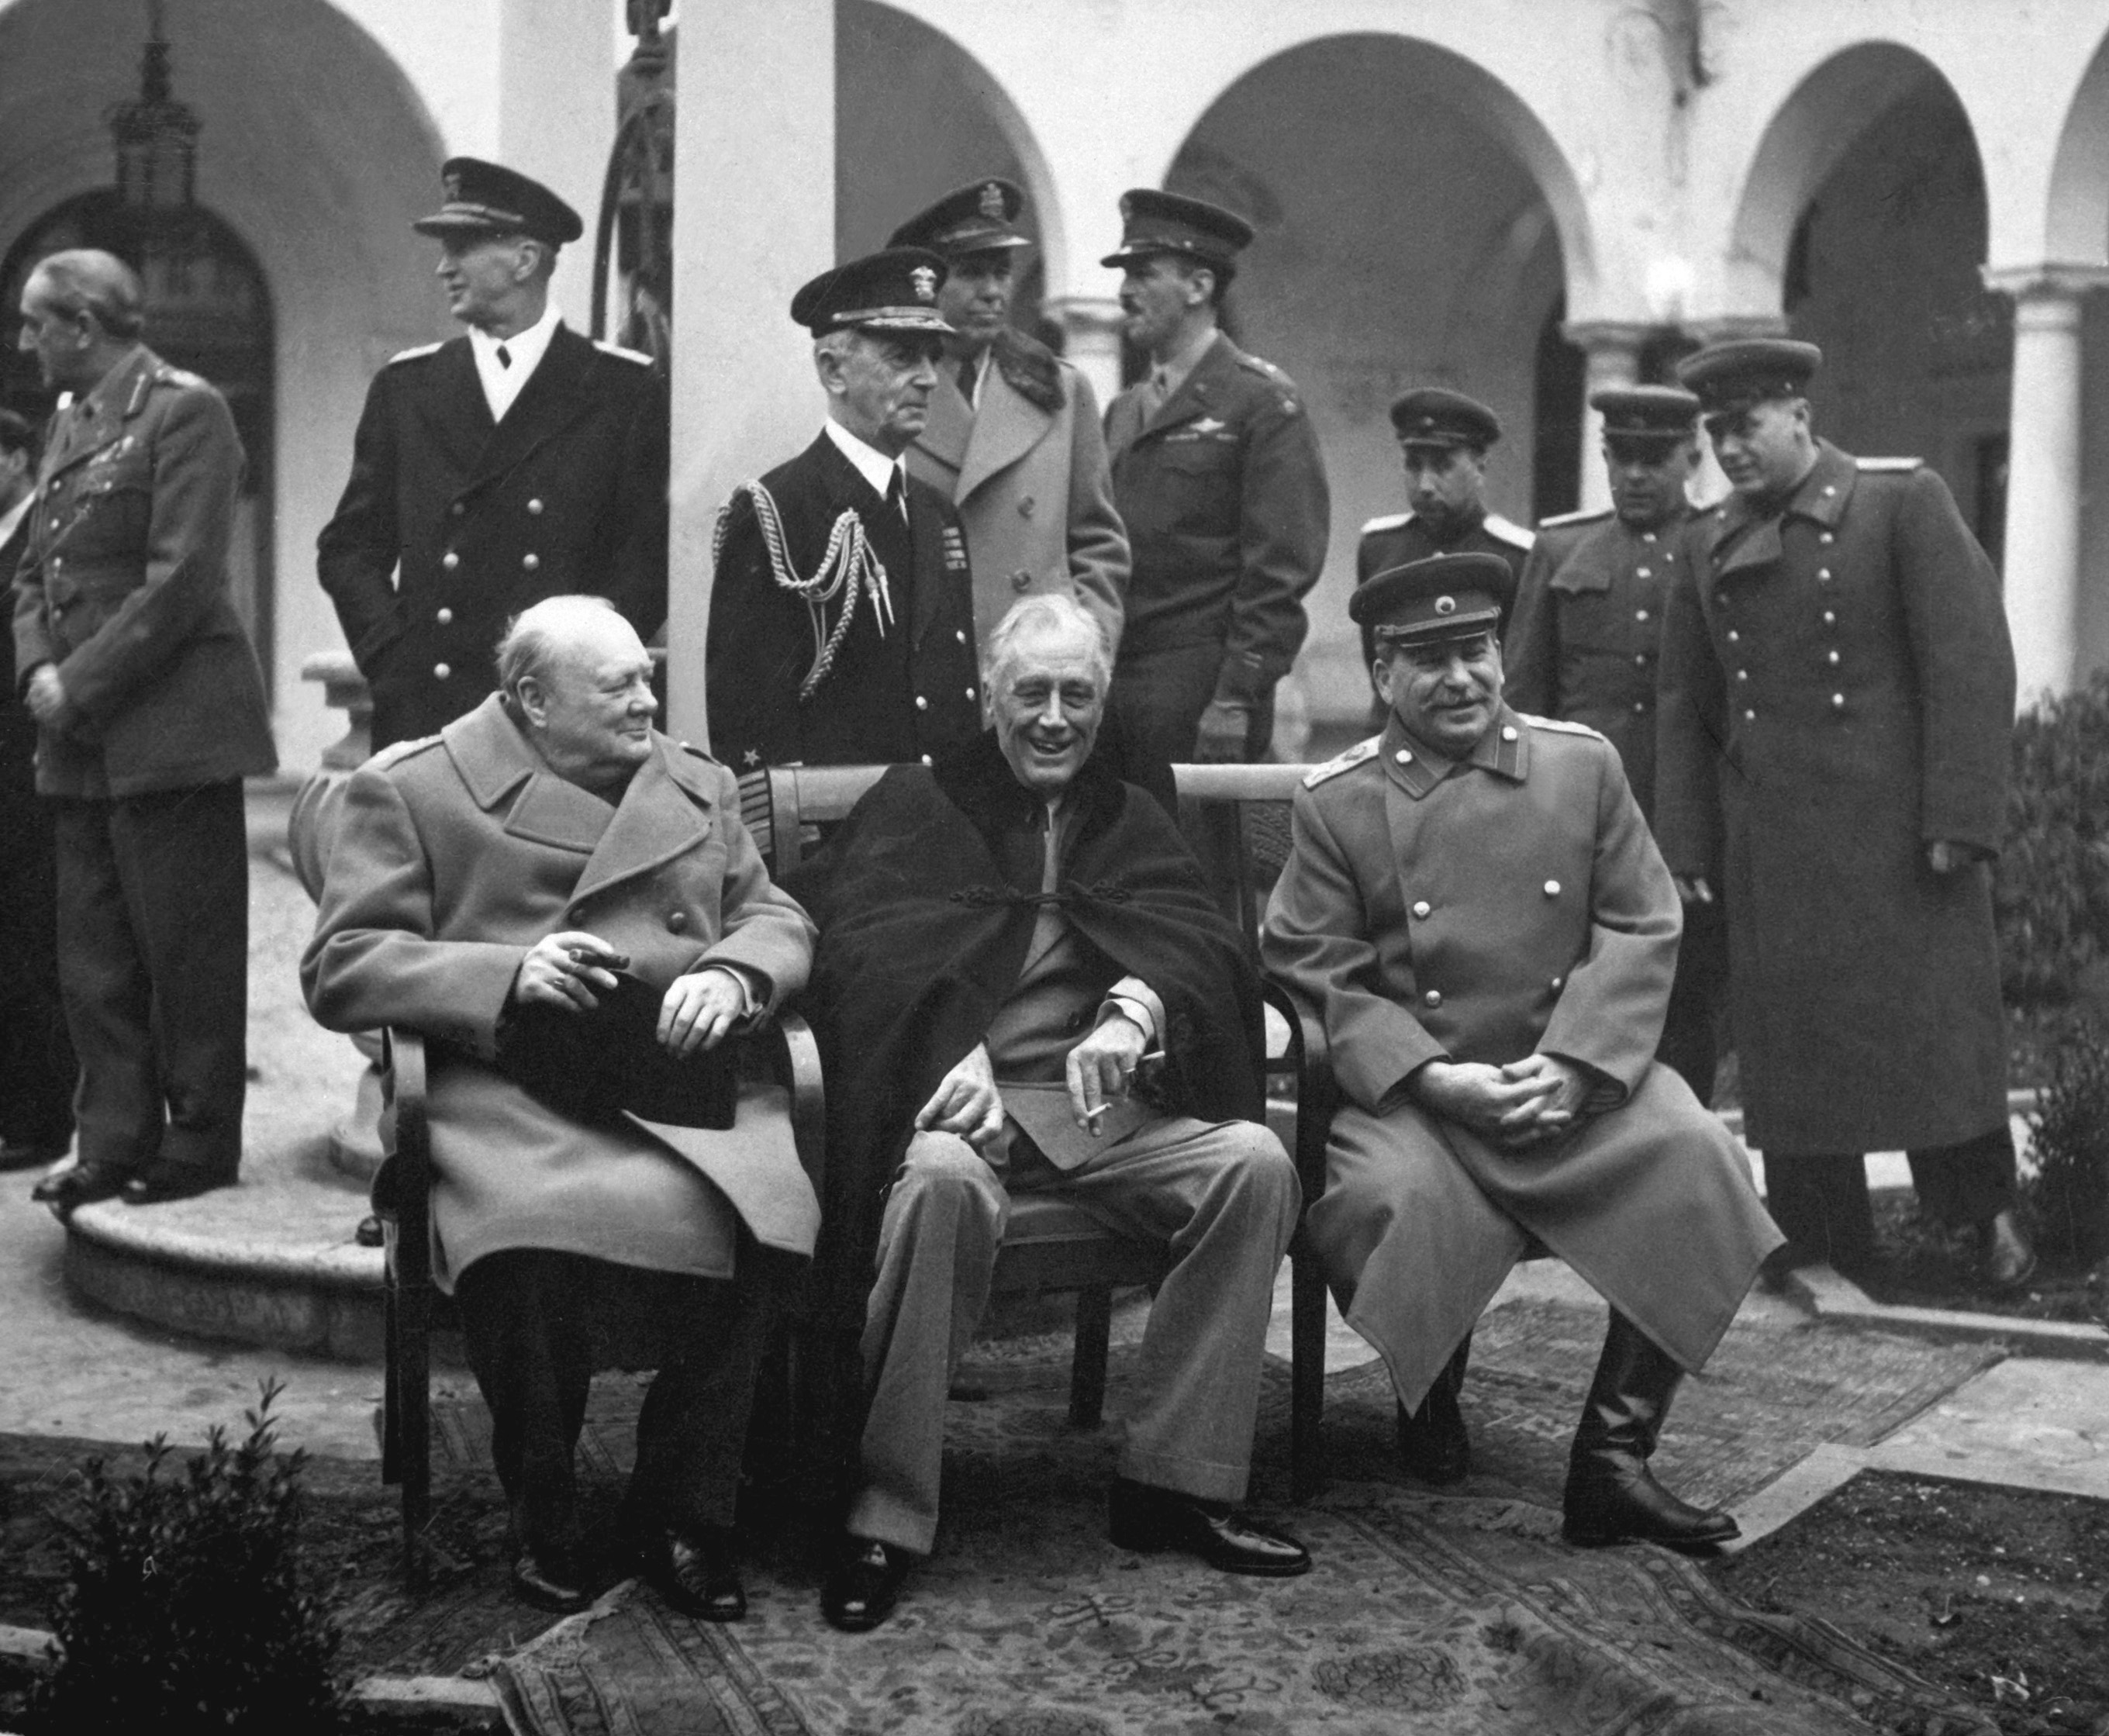 File:Yalta Conference (Churchill, Roosevelt, Stalin) (B&W).jpg